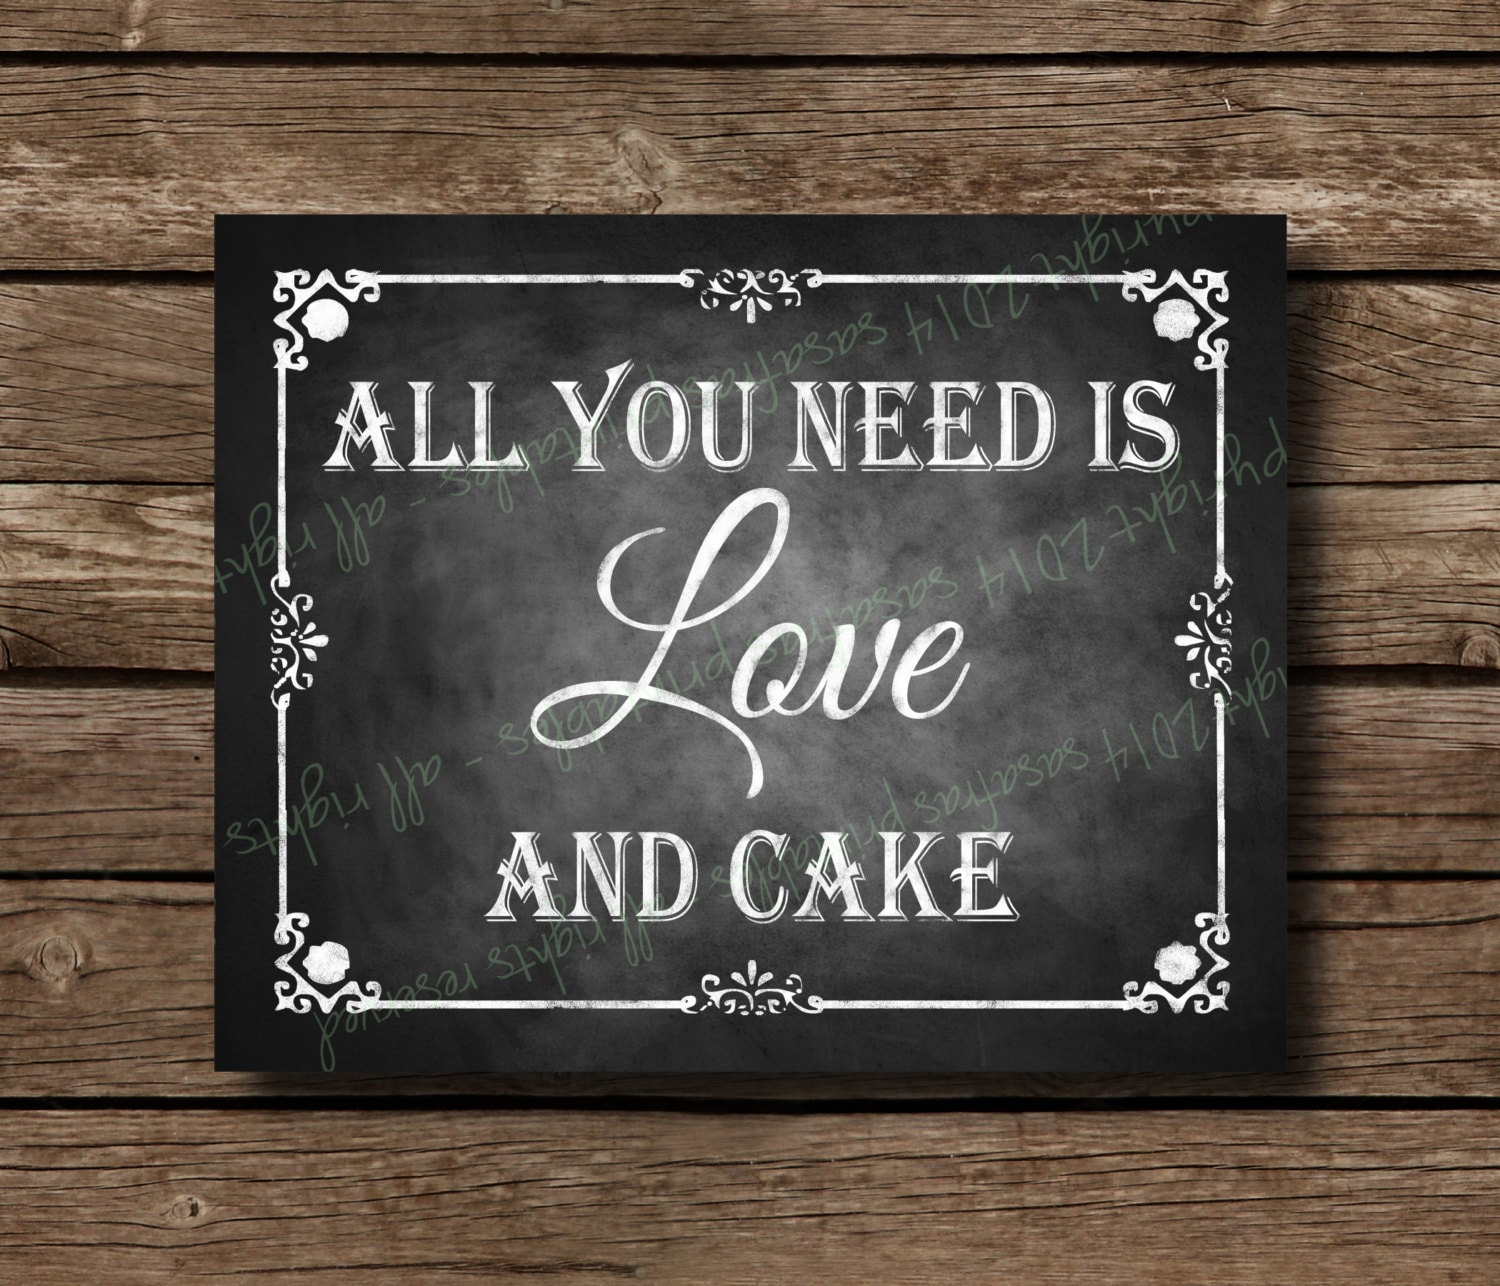 photograph about Printable Chalkboard Signs named Printable Chalkboard Wedding day Cake Indication, Dessert Bar, Wedding day Cake, Marriage ceremony Signal, Rustic Wedding ceremony Signal, Chalkboard Indication, All oneself will need is take pleasure in